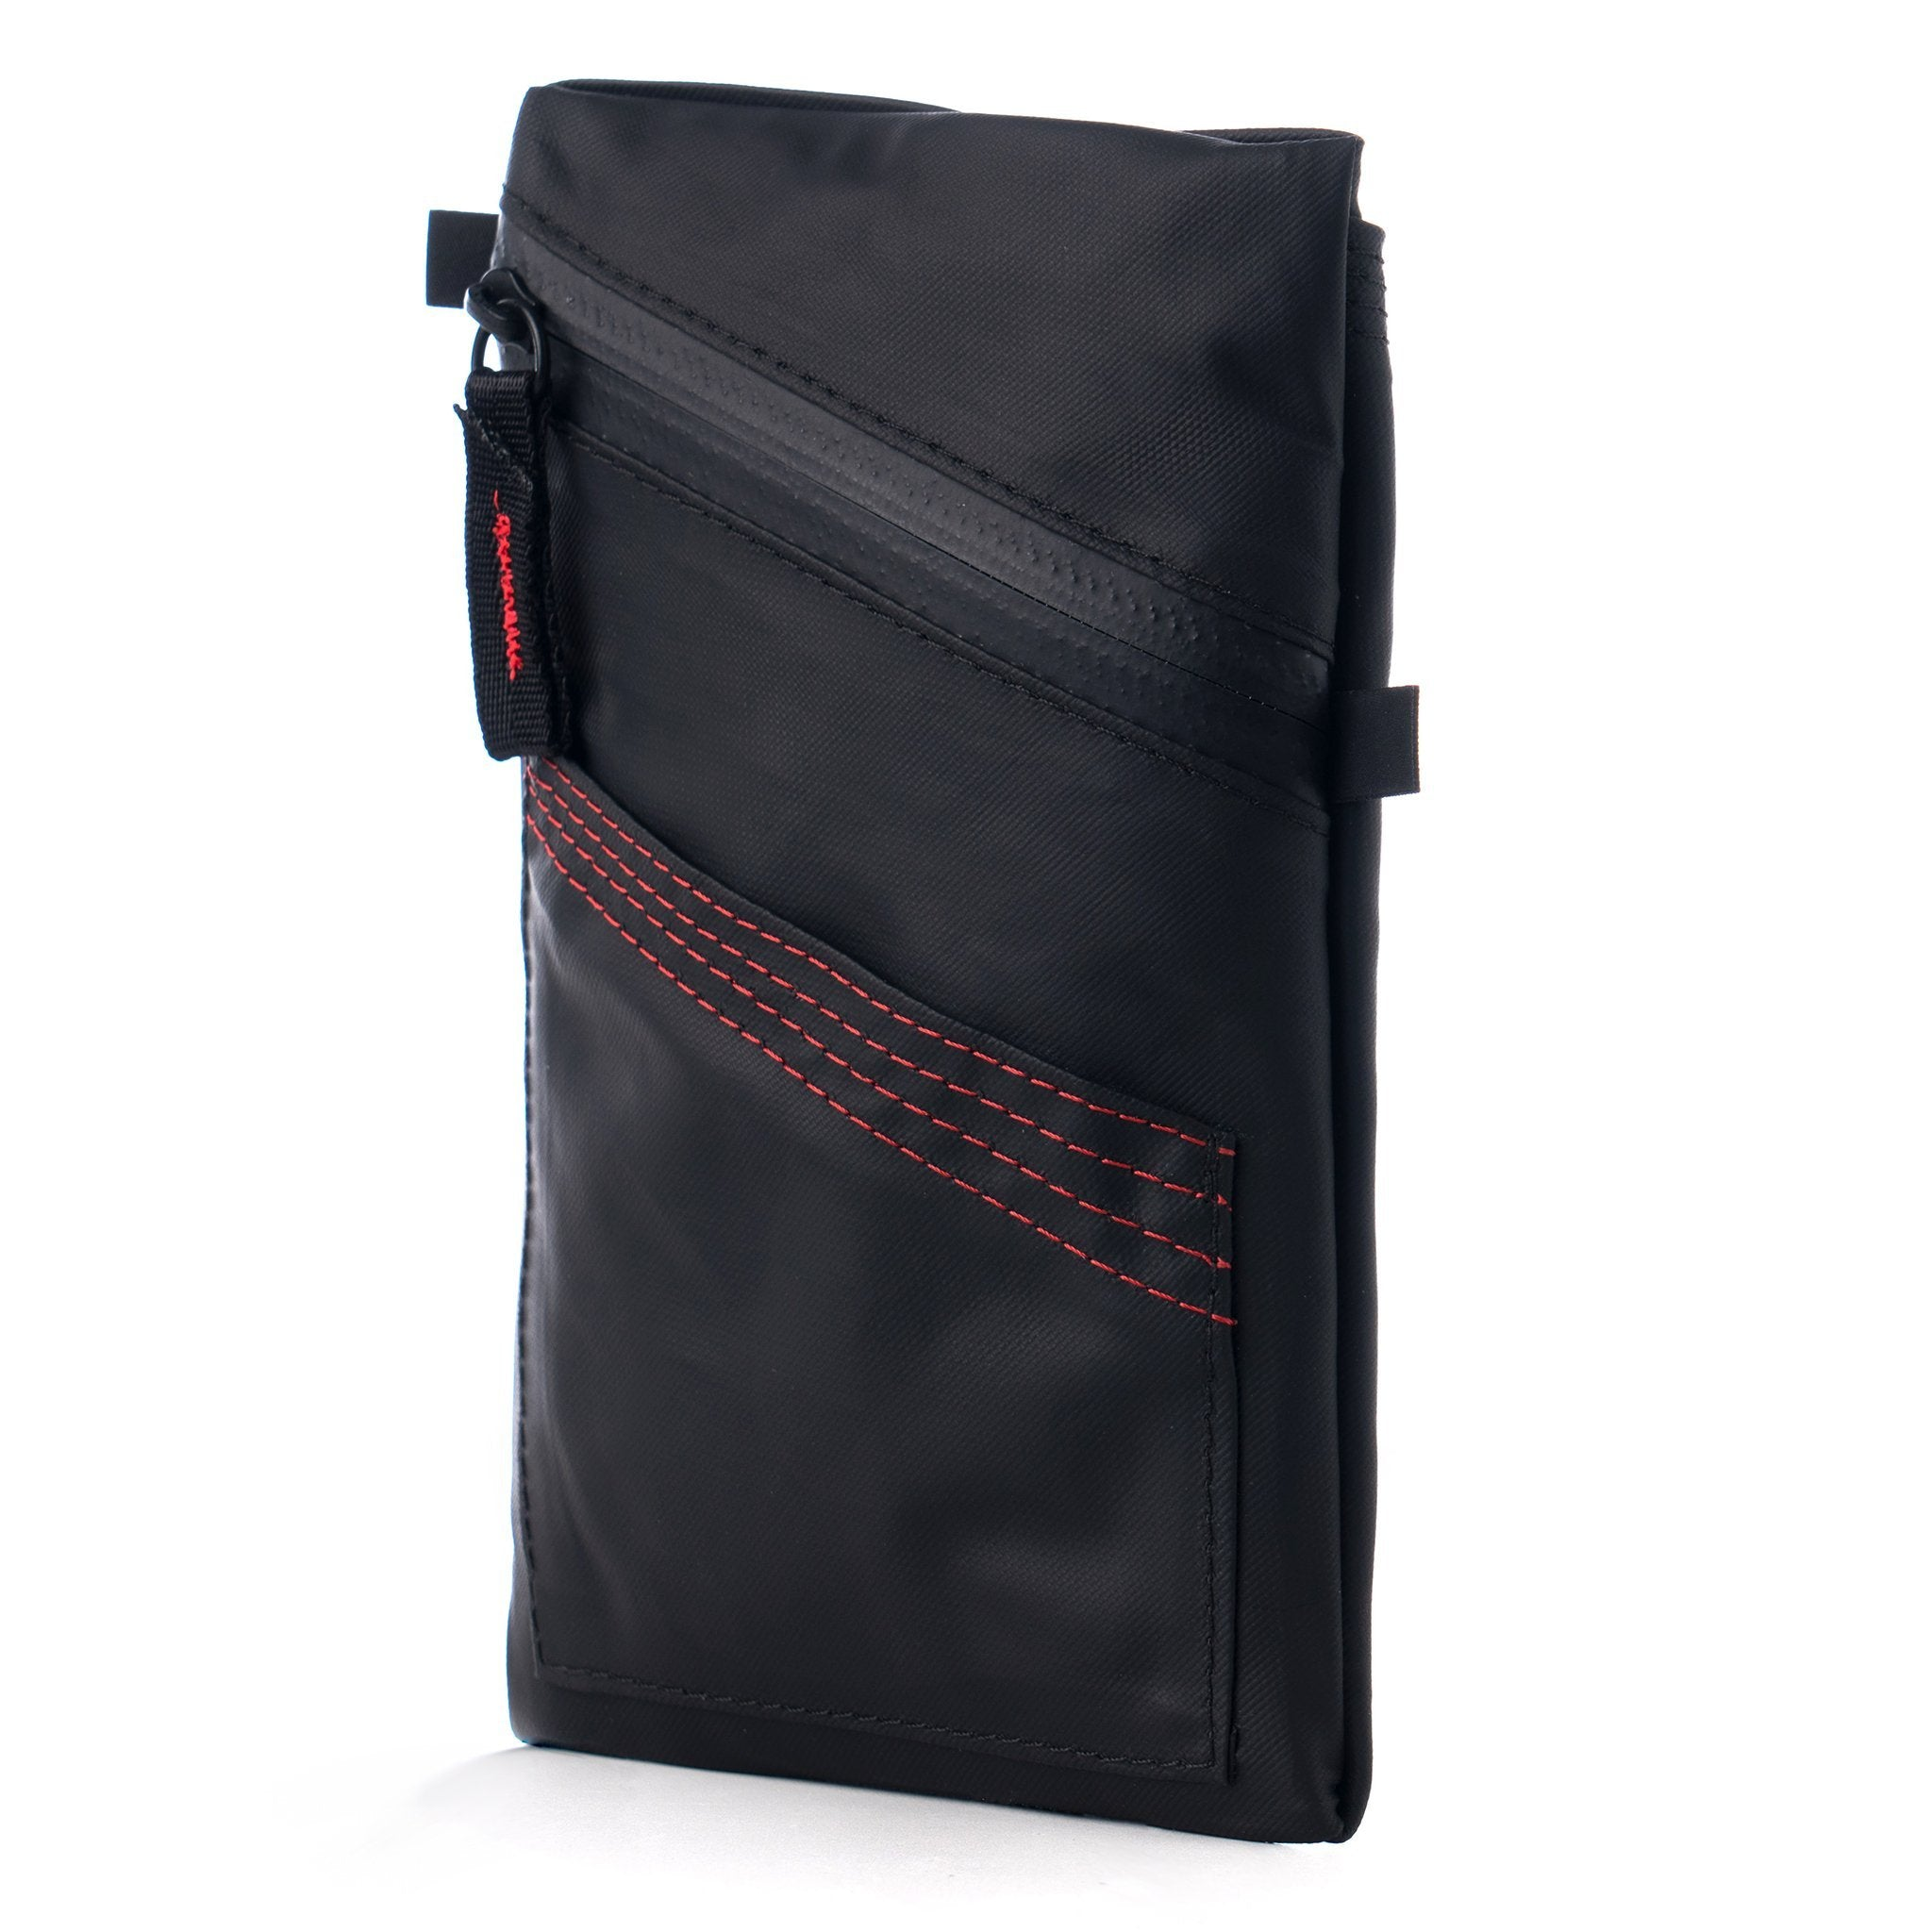 Ballistic black cycling ride pouch weatherproof durable rainproof phone wallet